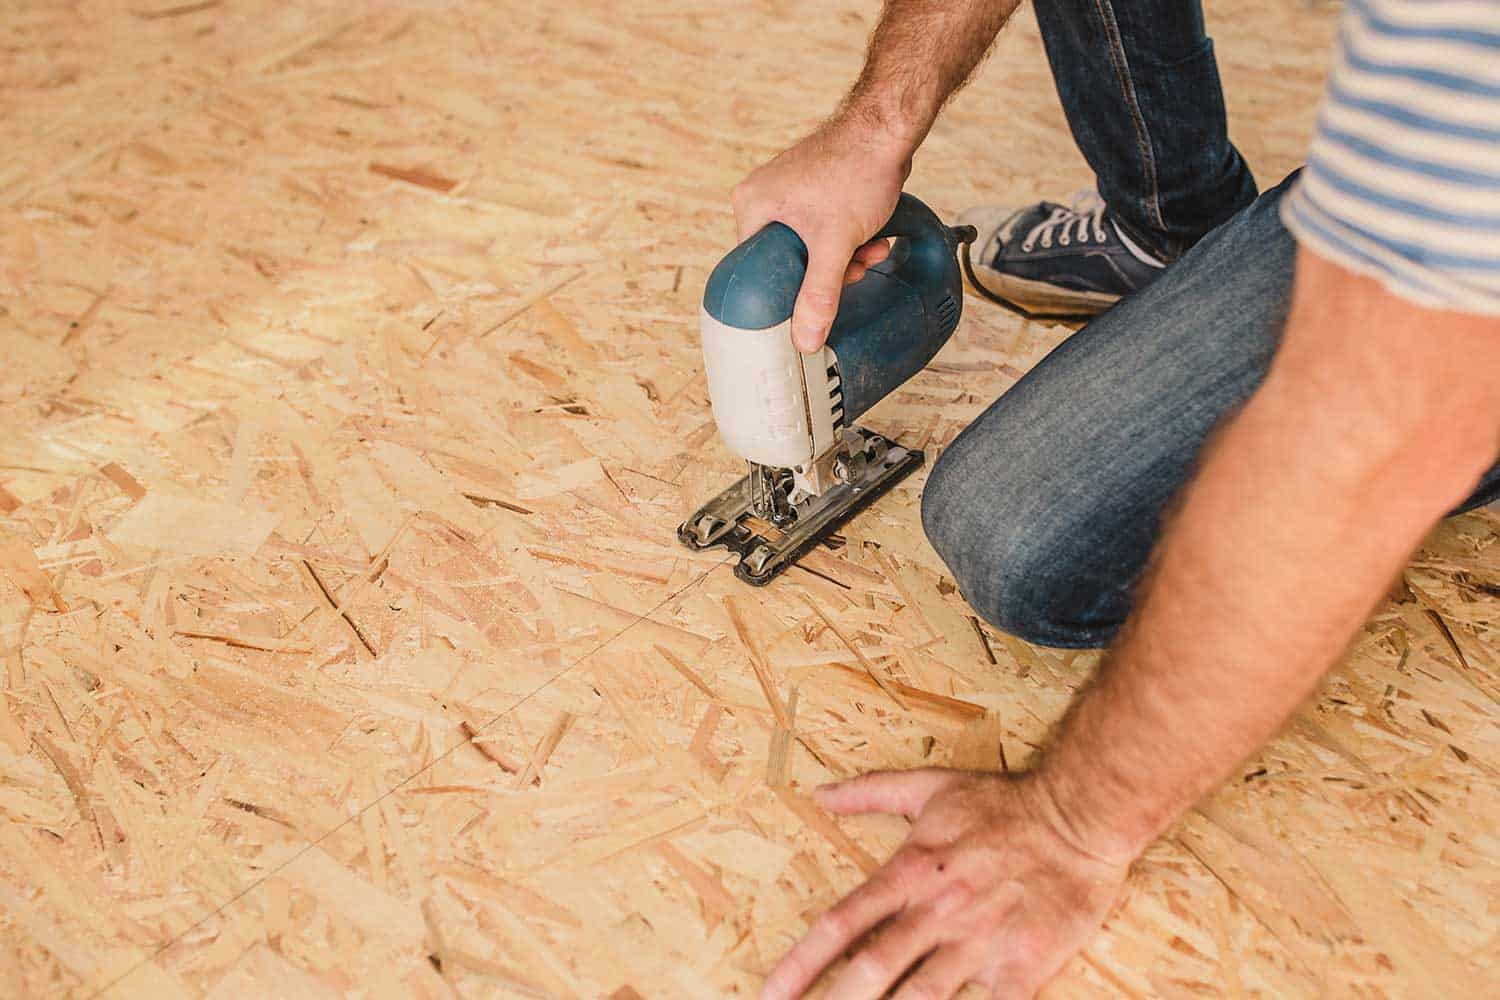 Installation of a subfloor from sheets of plywood and OSB